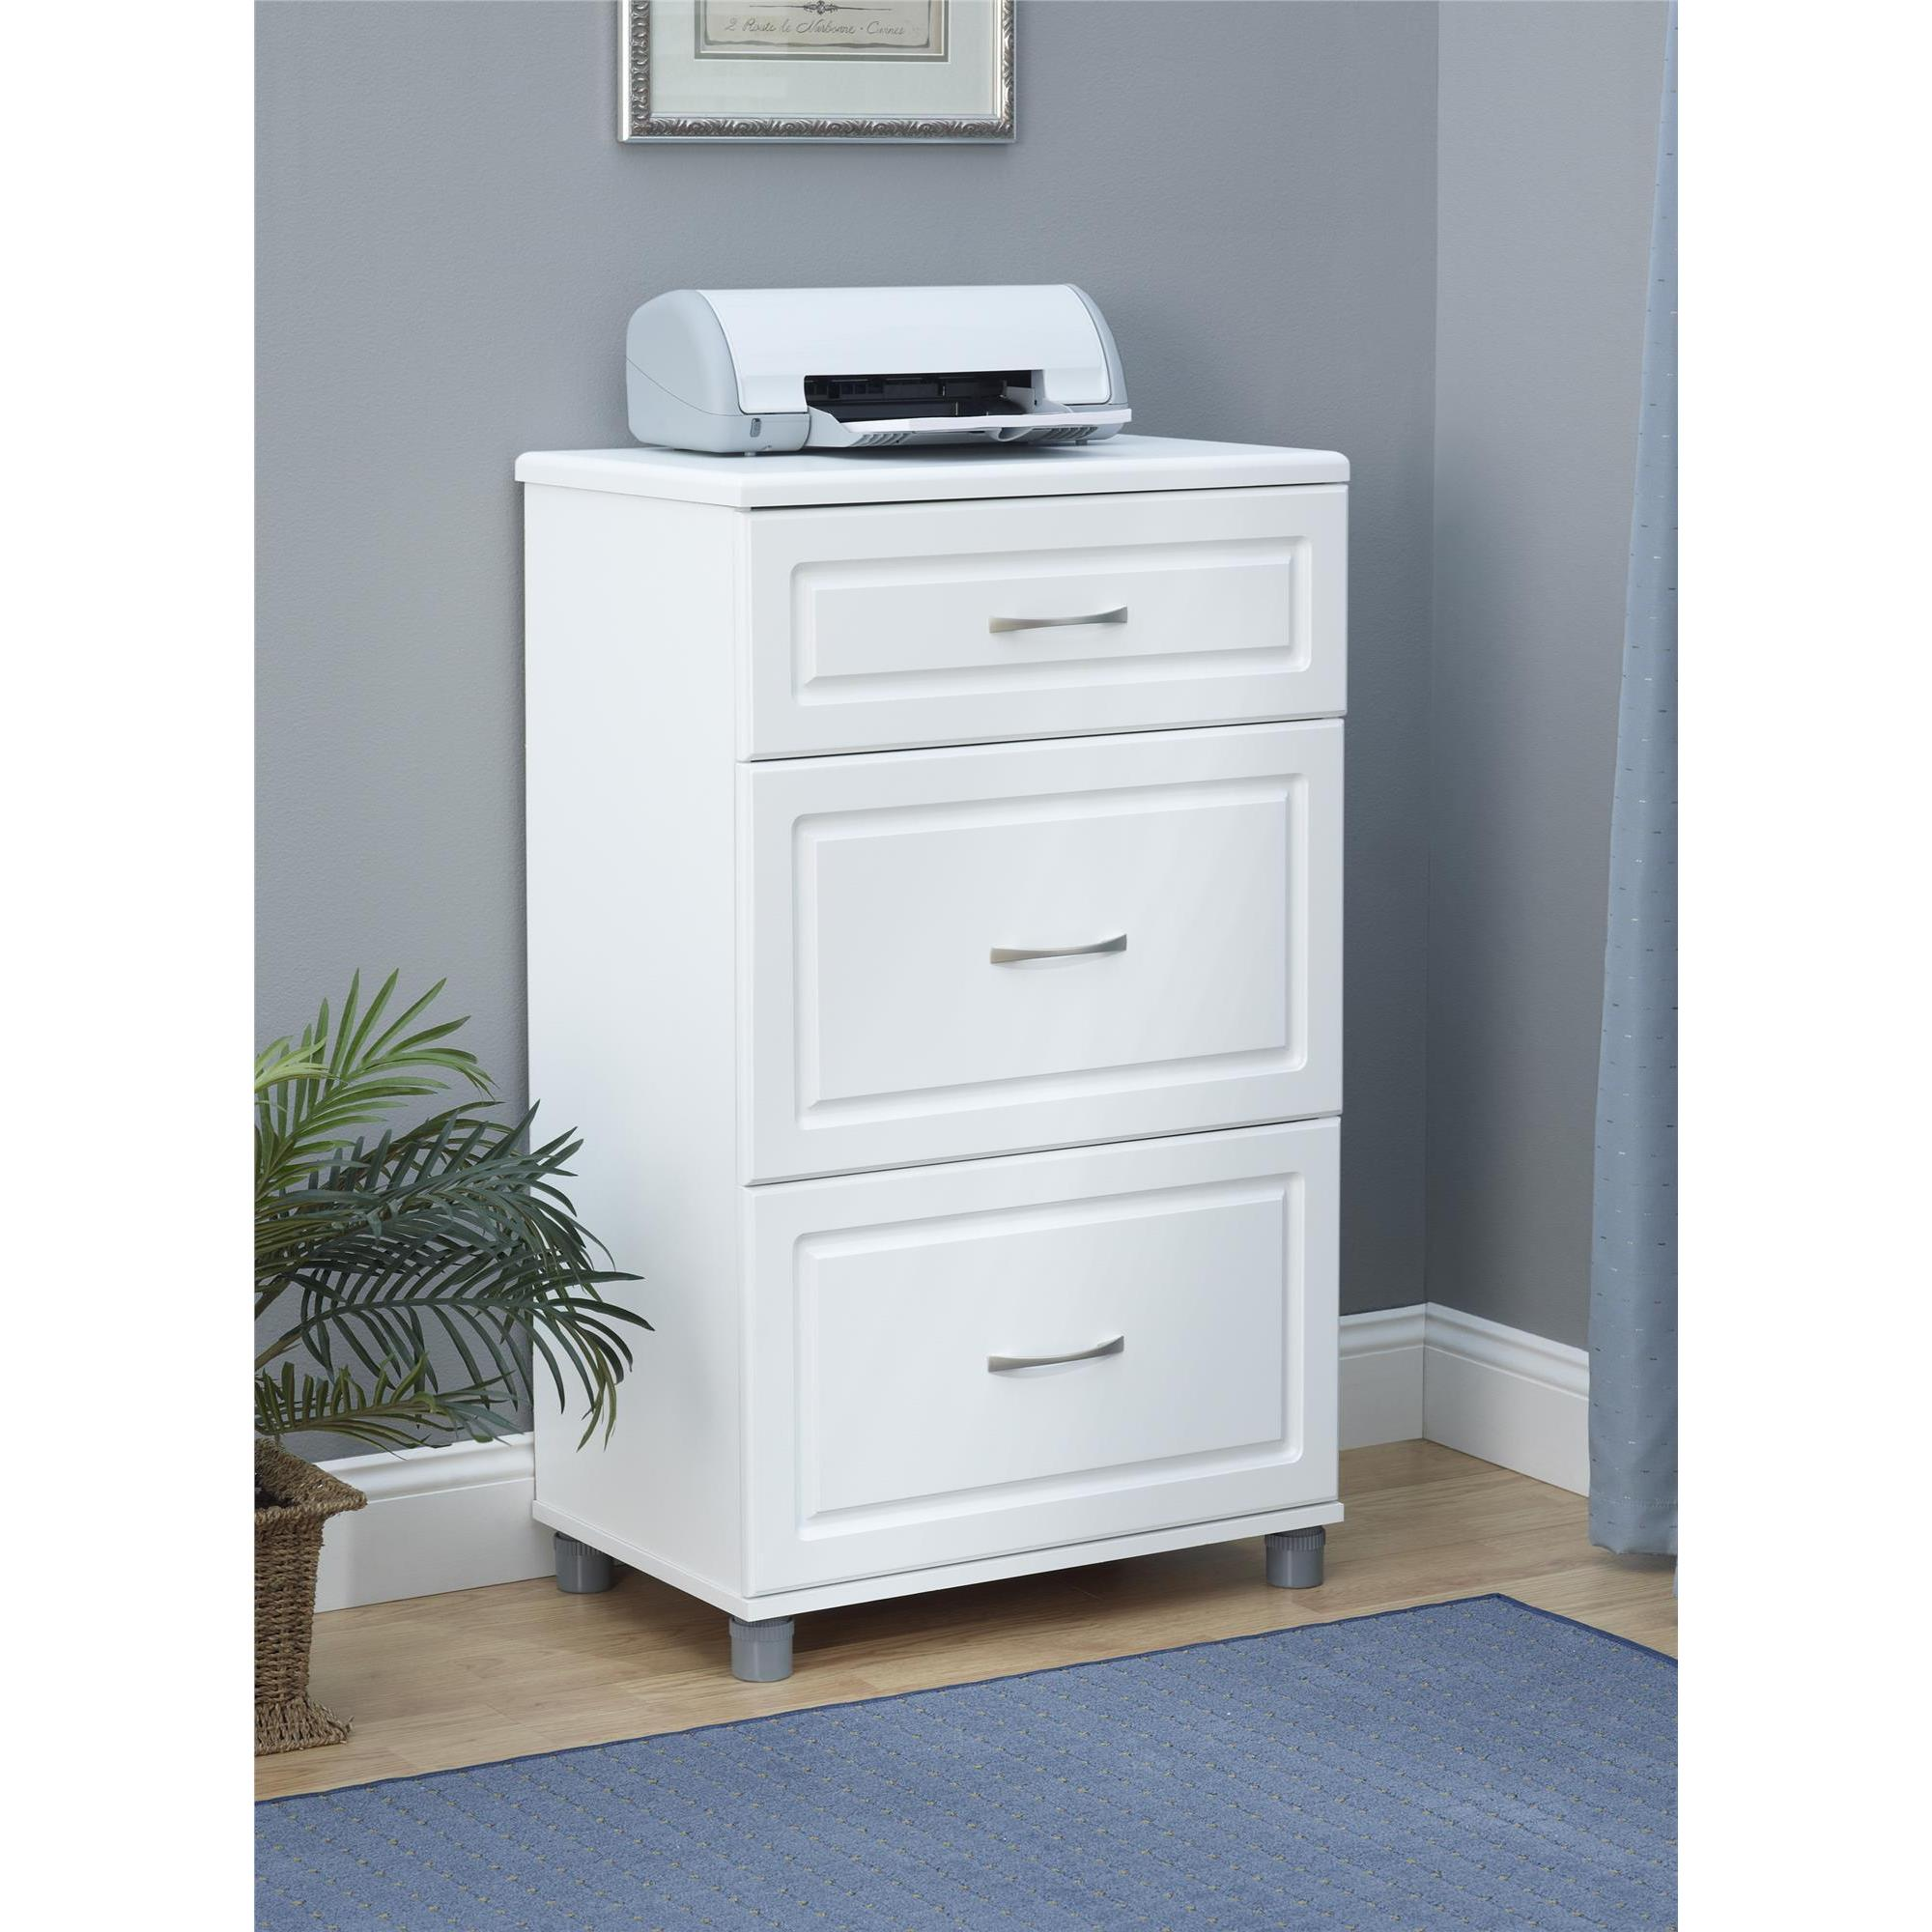 Systembuild White Kendall 24 Inch 3 Drawer Base Cabinet